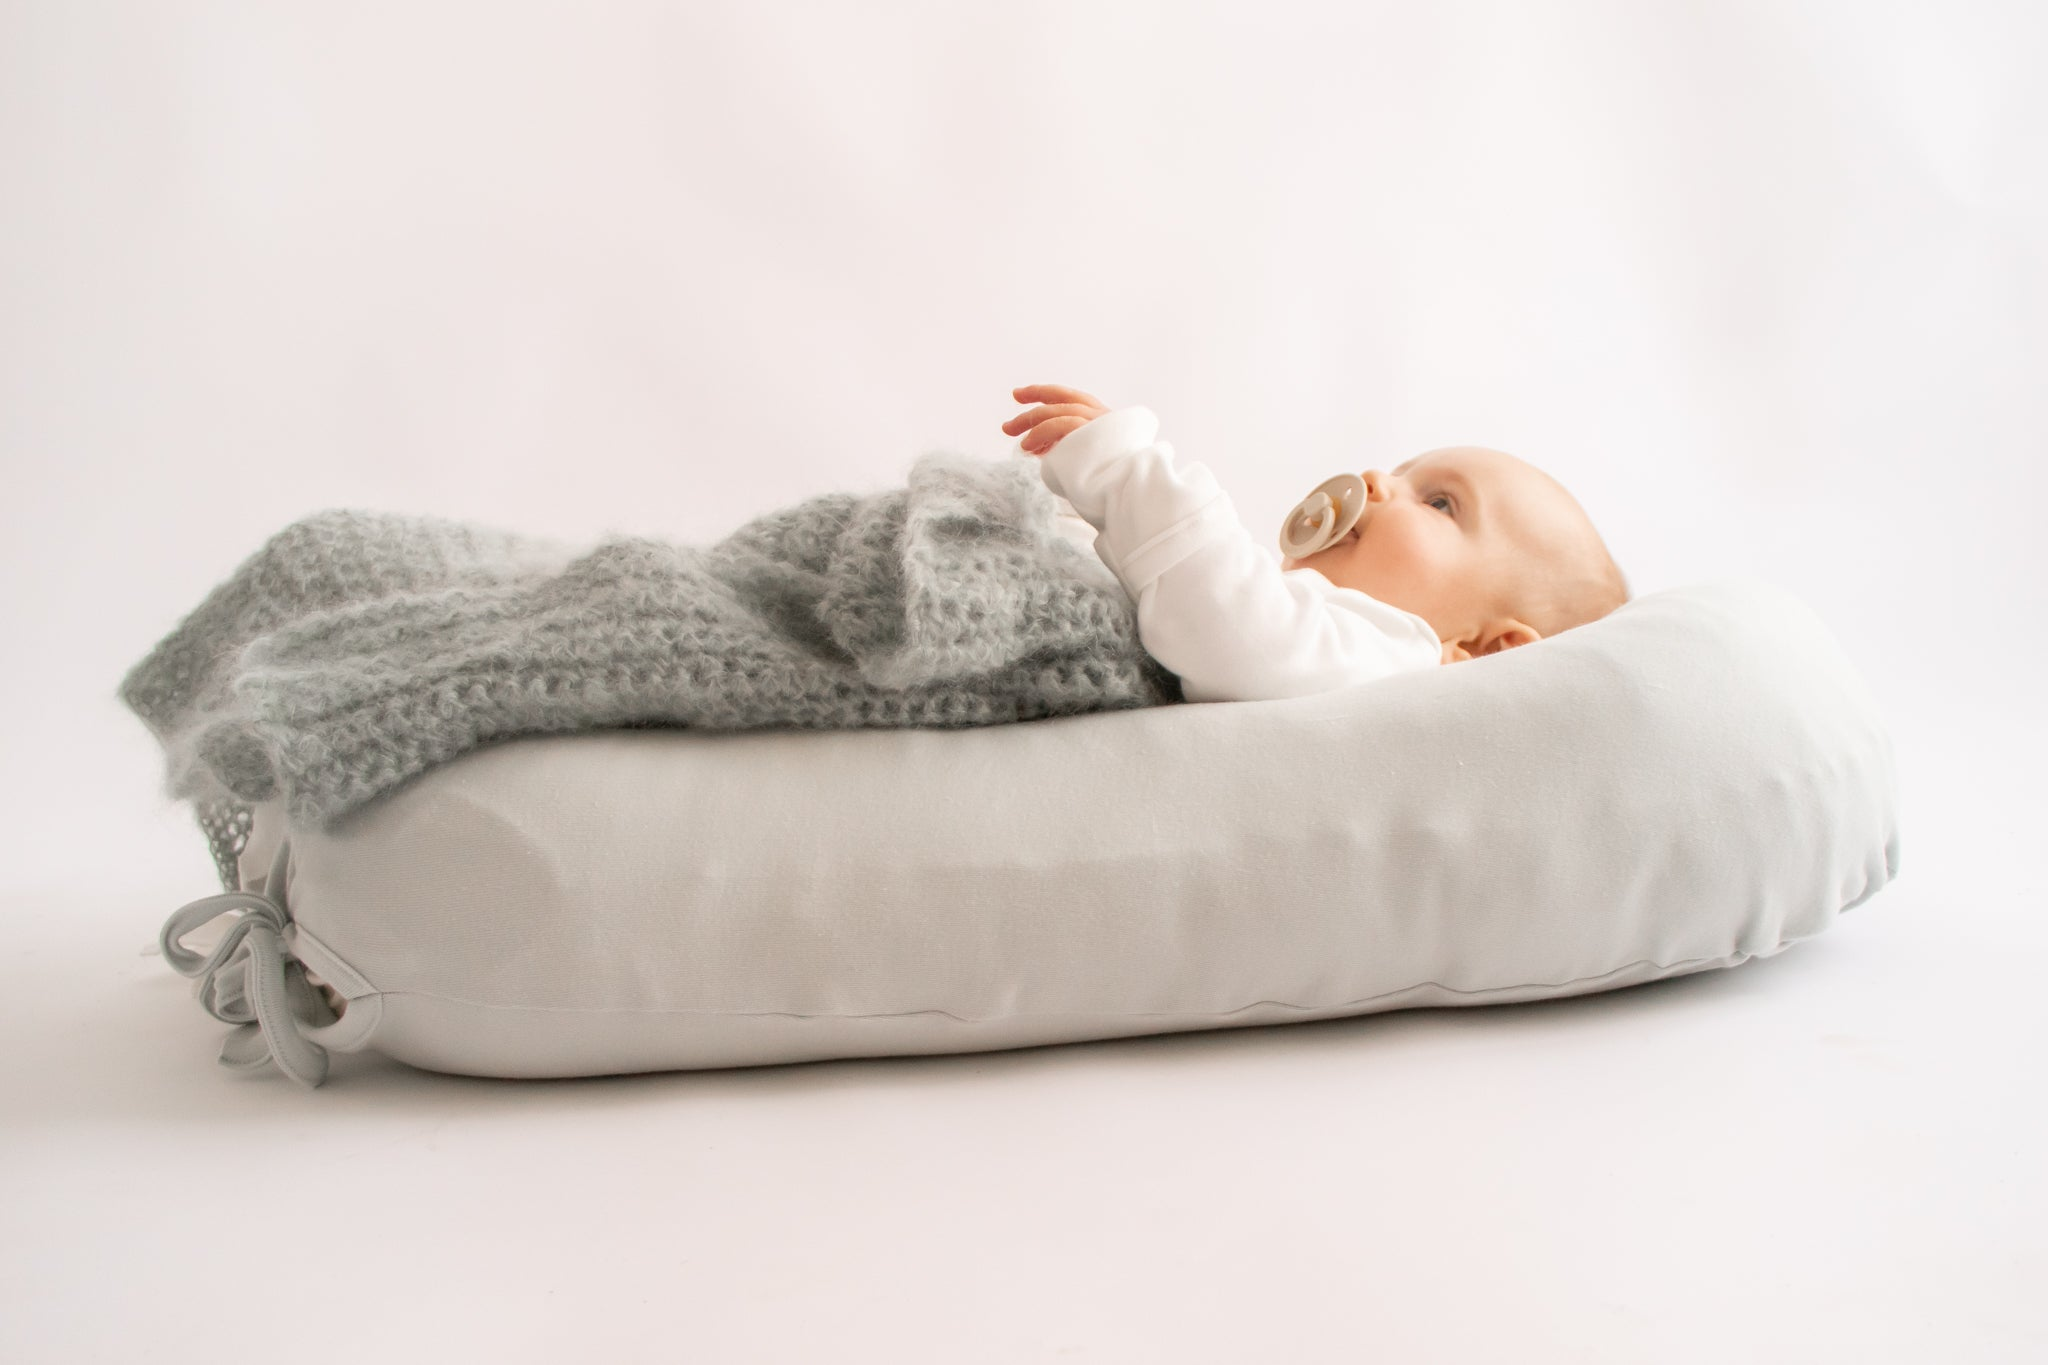 Merino Wool Nesting Pod 3-in-1 with Sea Foam cotton covers (lead time 2-3 weeks)